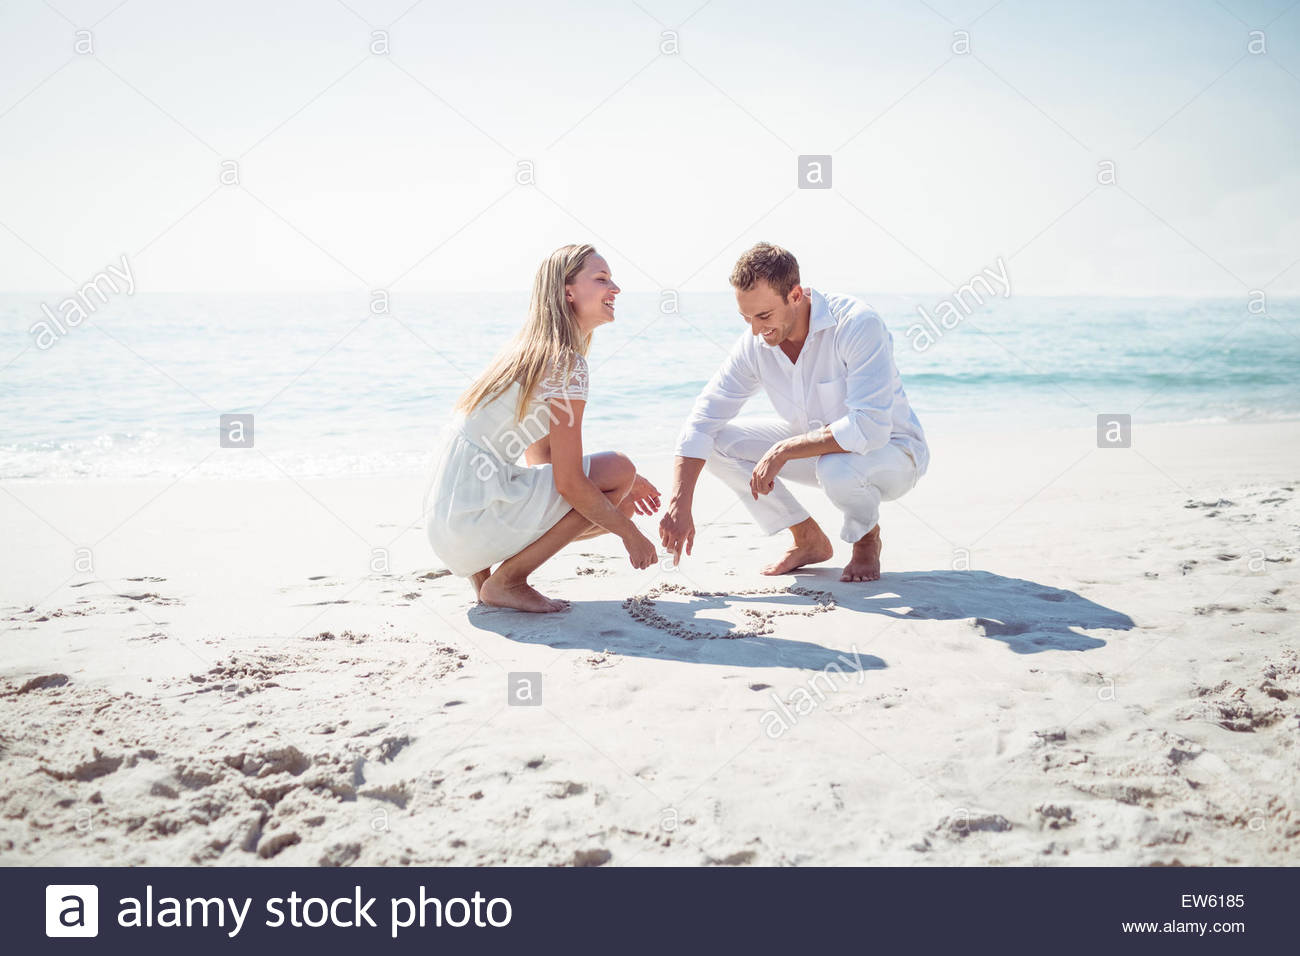 1300x956 Happy Couple Drawing Heart Shape In The Sand Stock Photo, Royalty